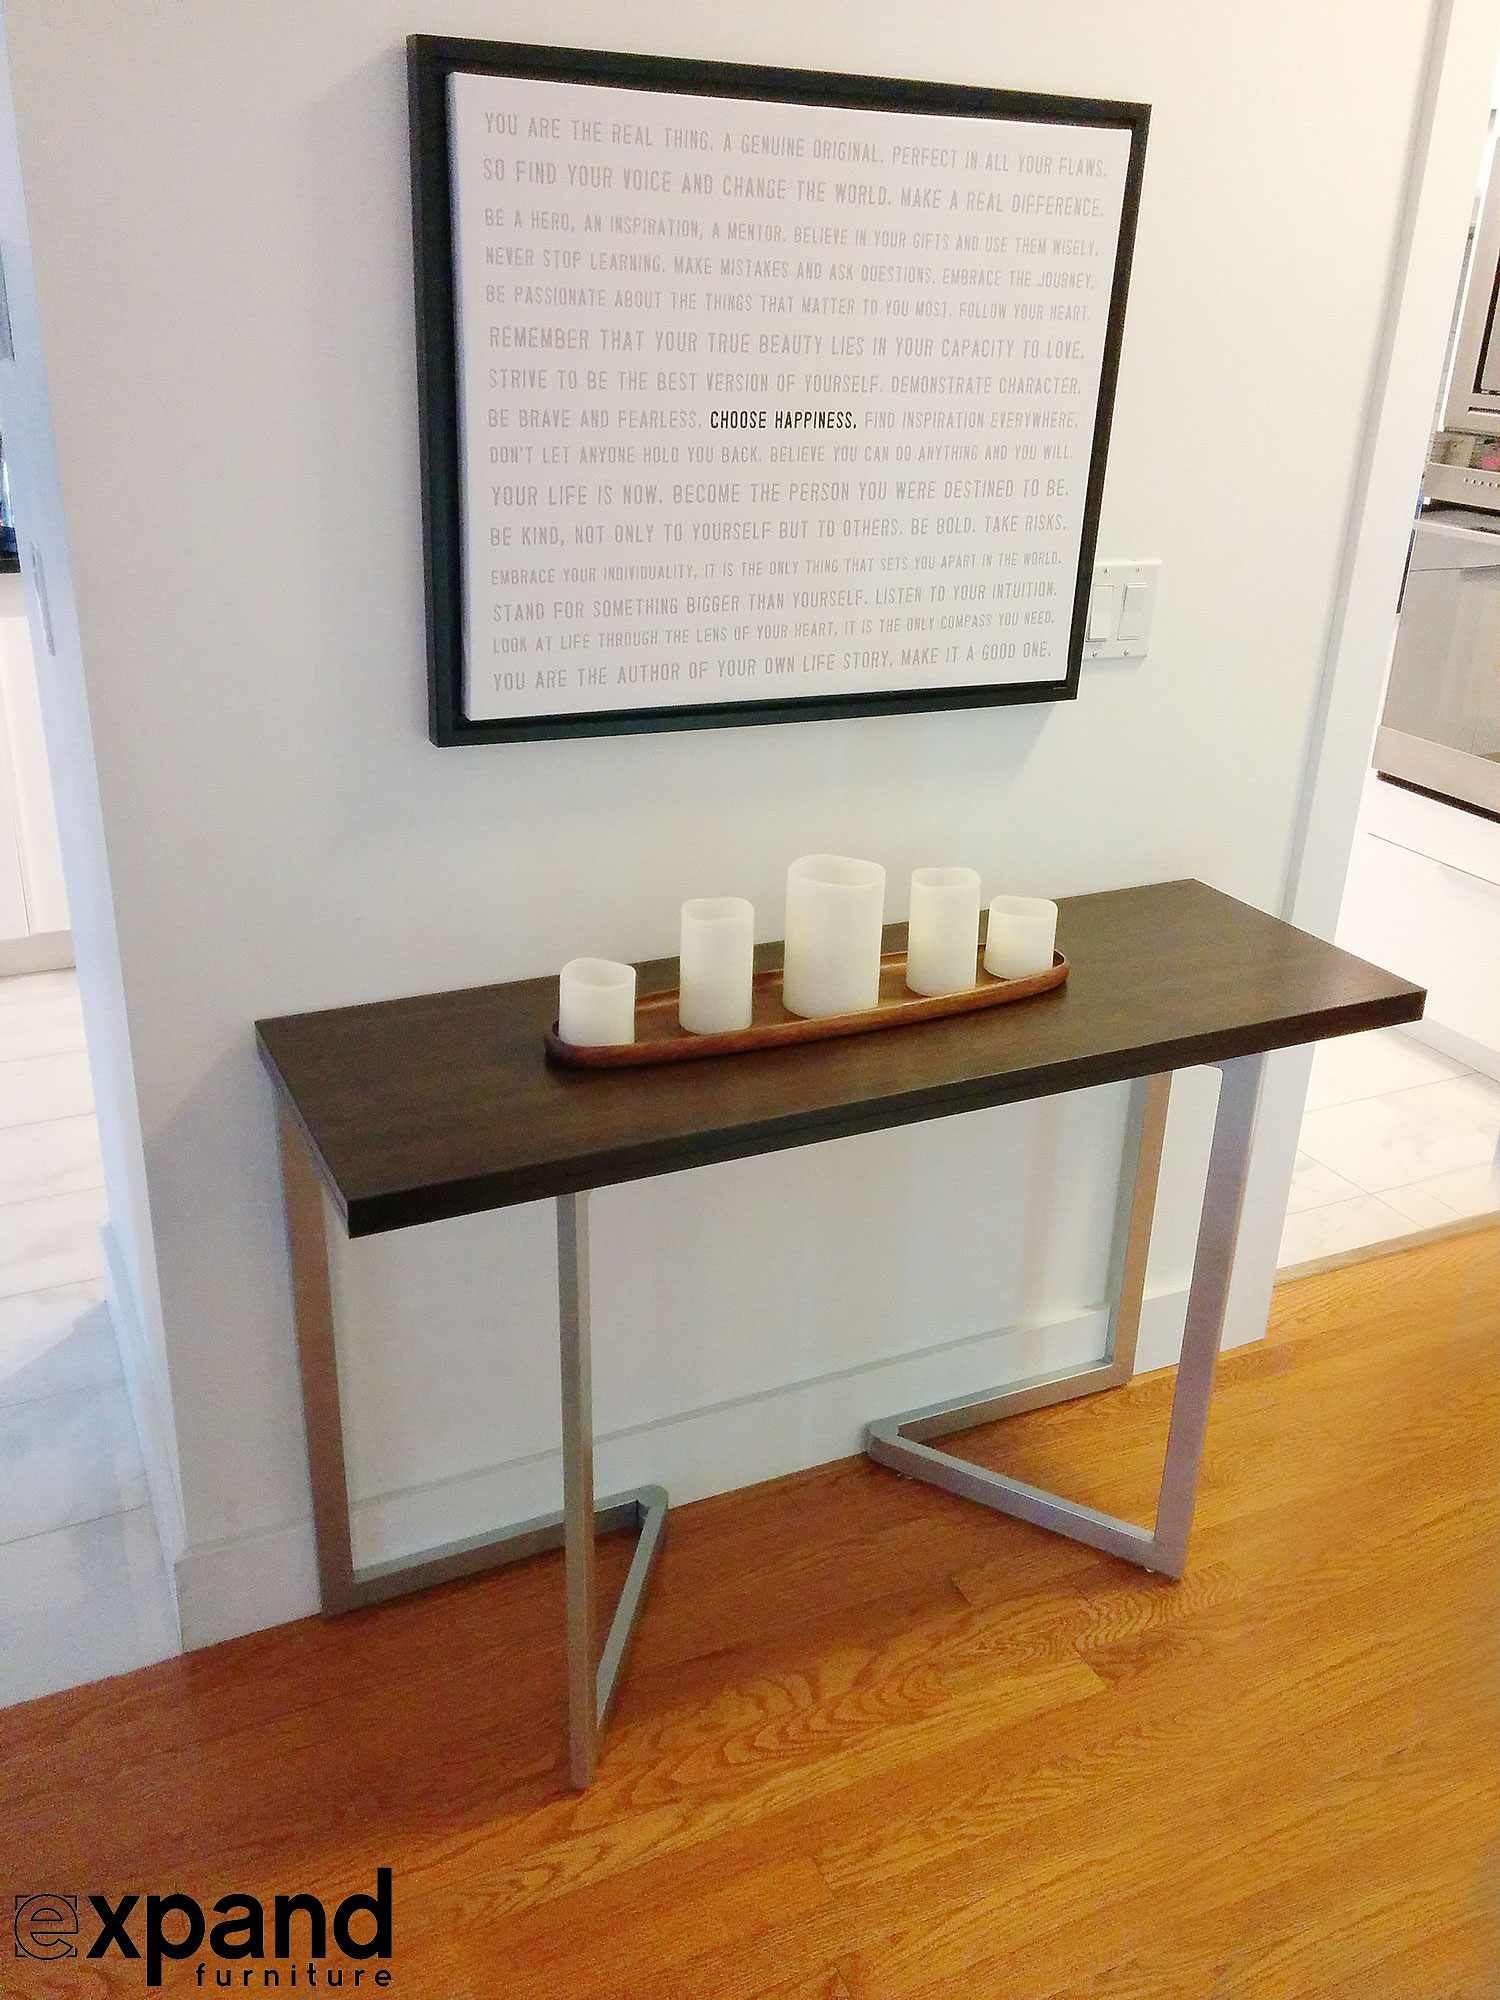 Transforming console to table expand furniture